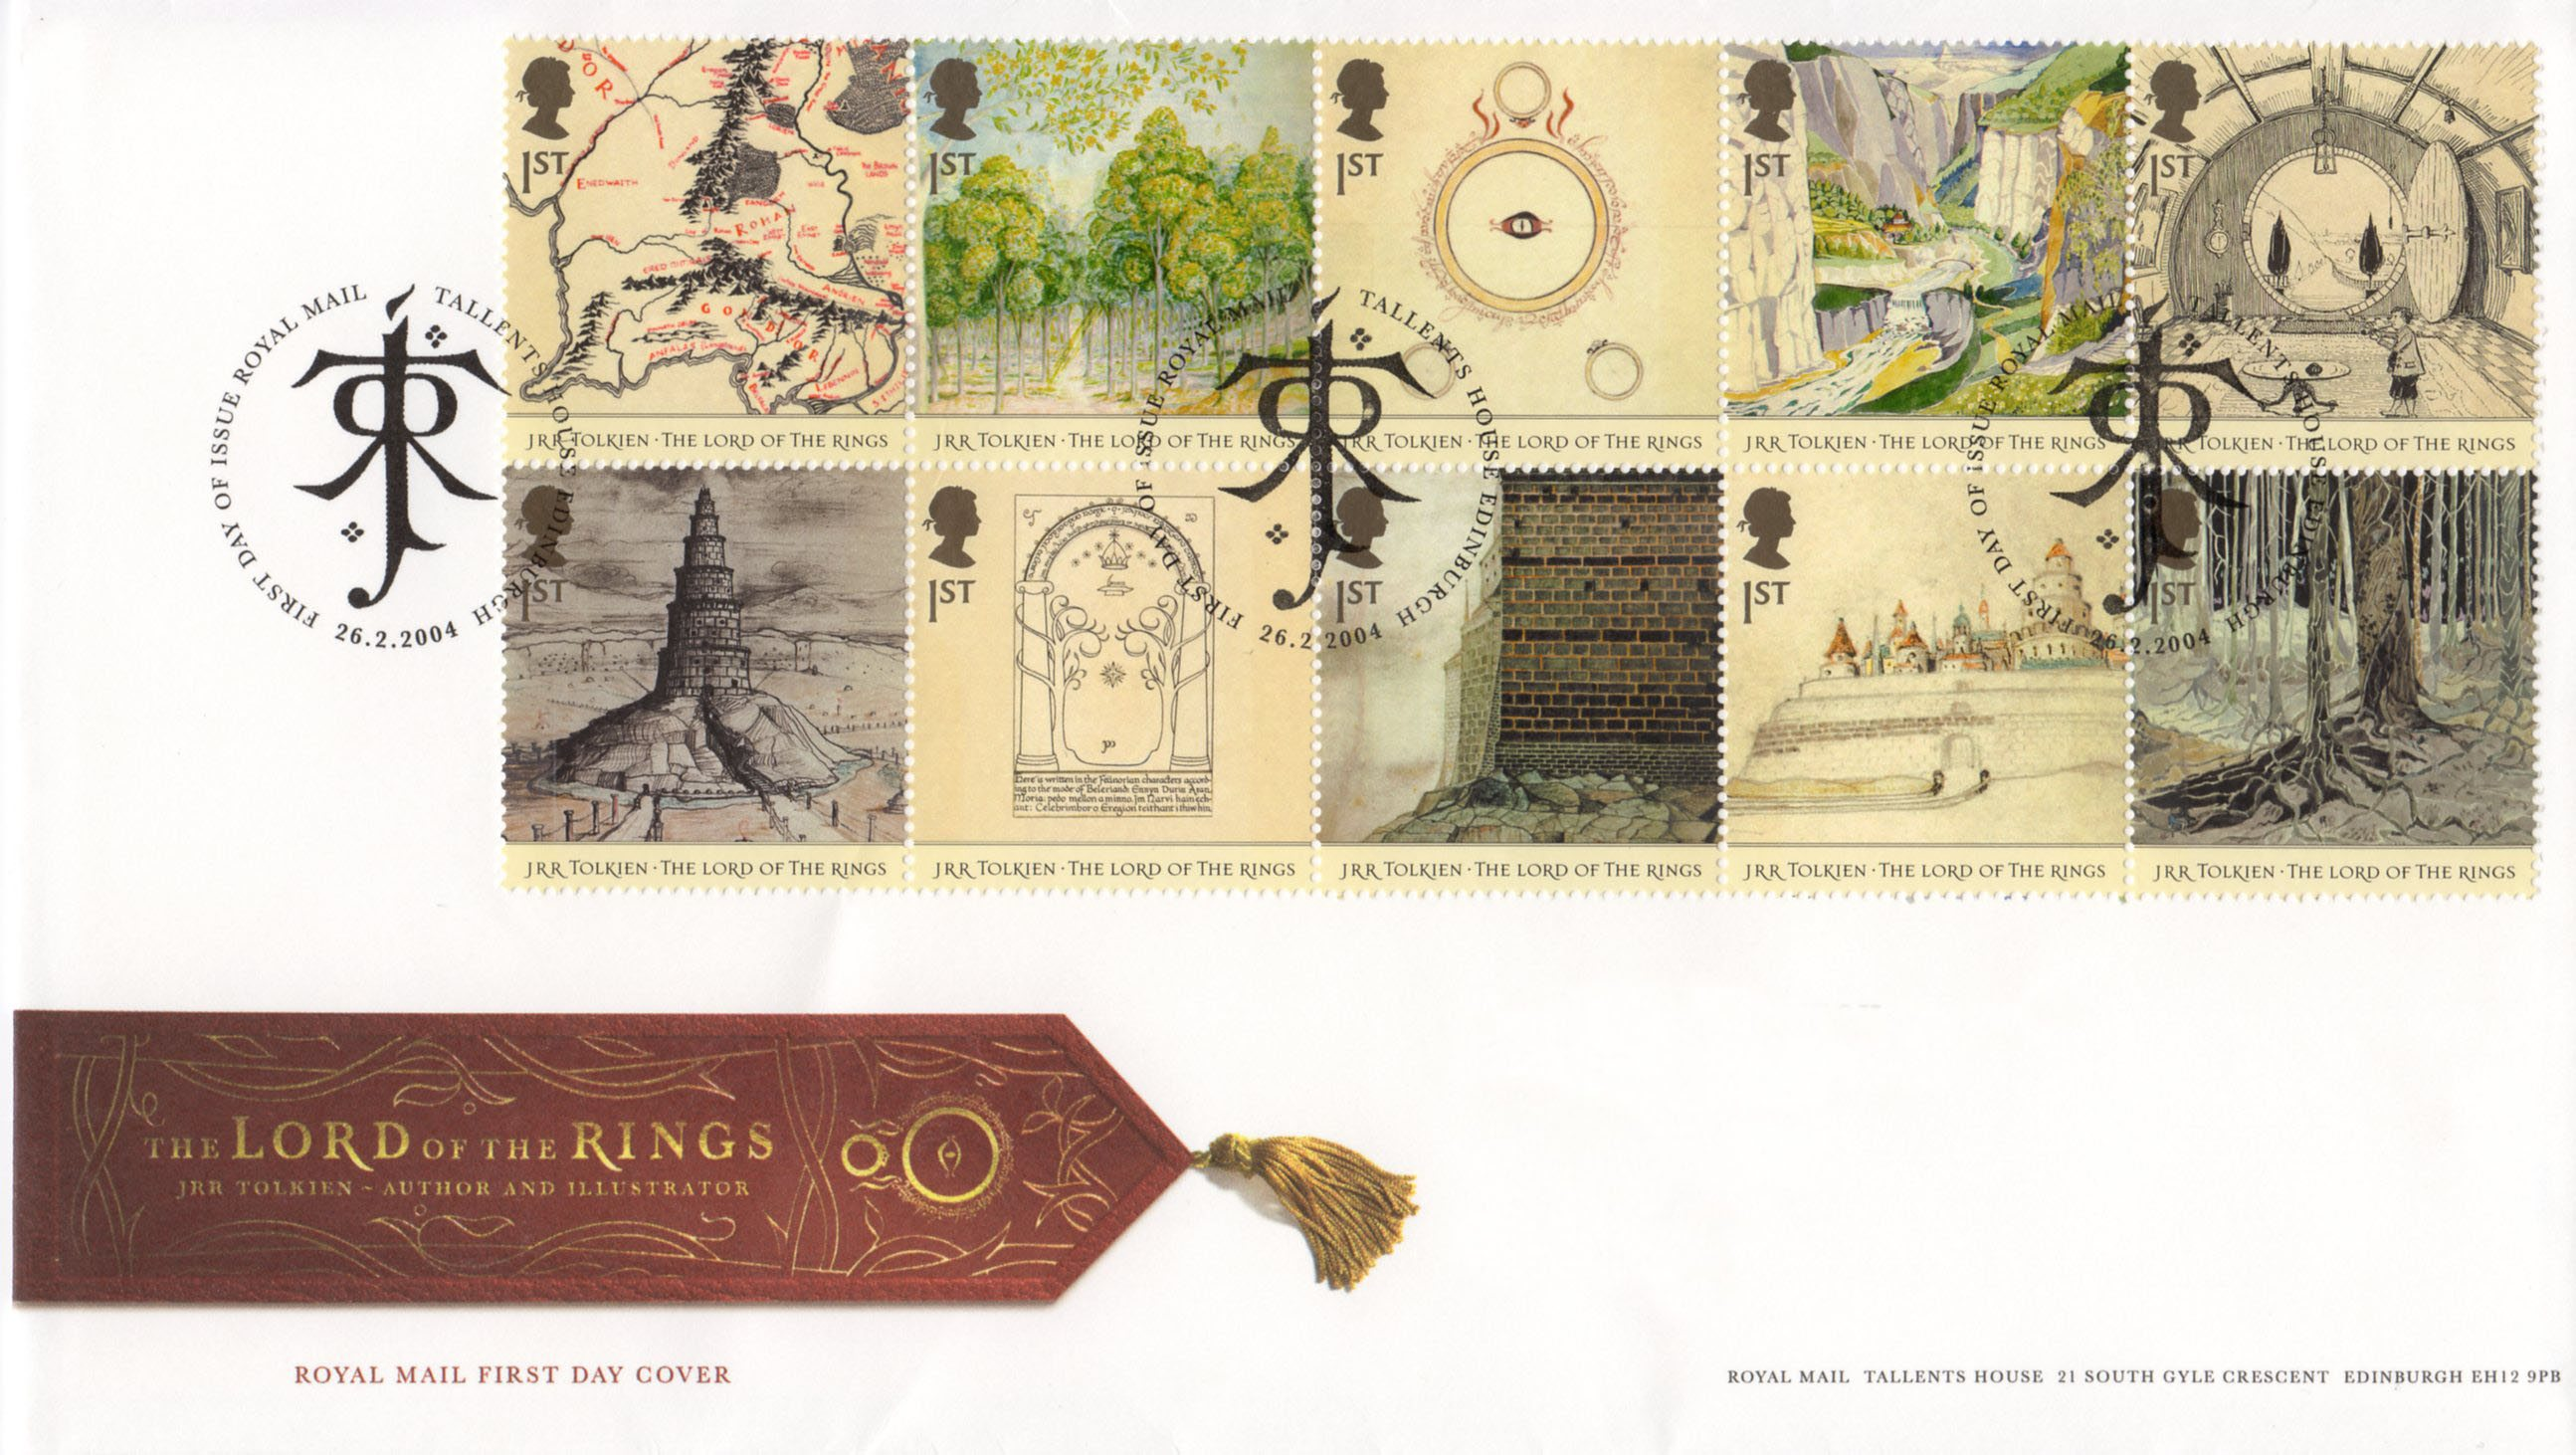 A First Day Cover with ten stamps depicting illustrations of locations in the fiction story The Lord of the Rings.